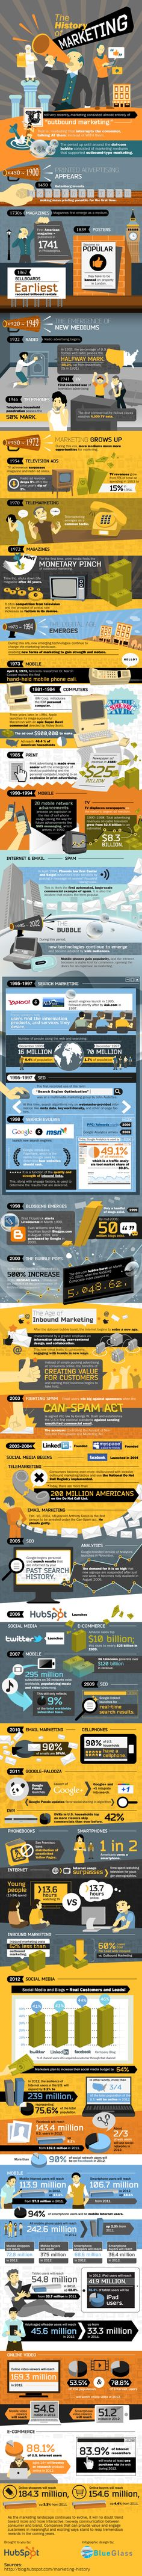 Love this inforgraphic. Brilliant History of Marketing - Hupspot: Feb 2012